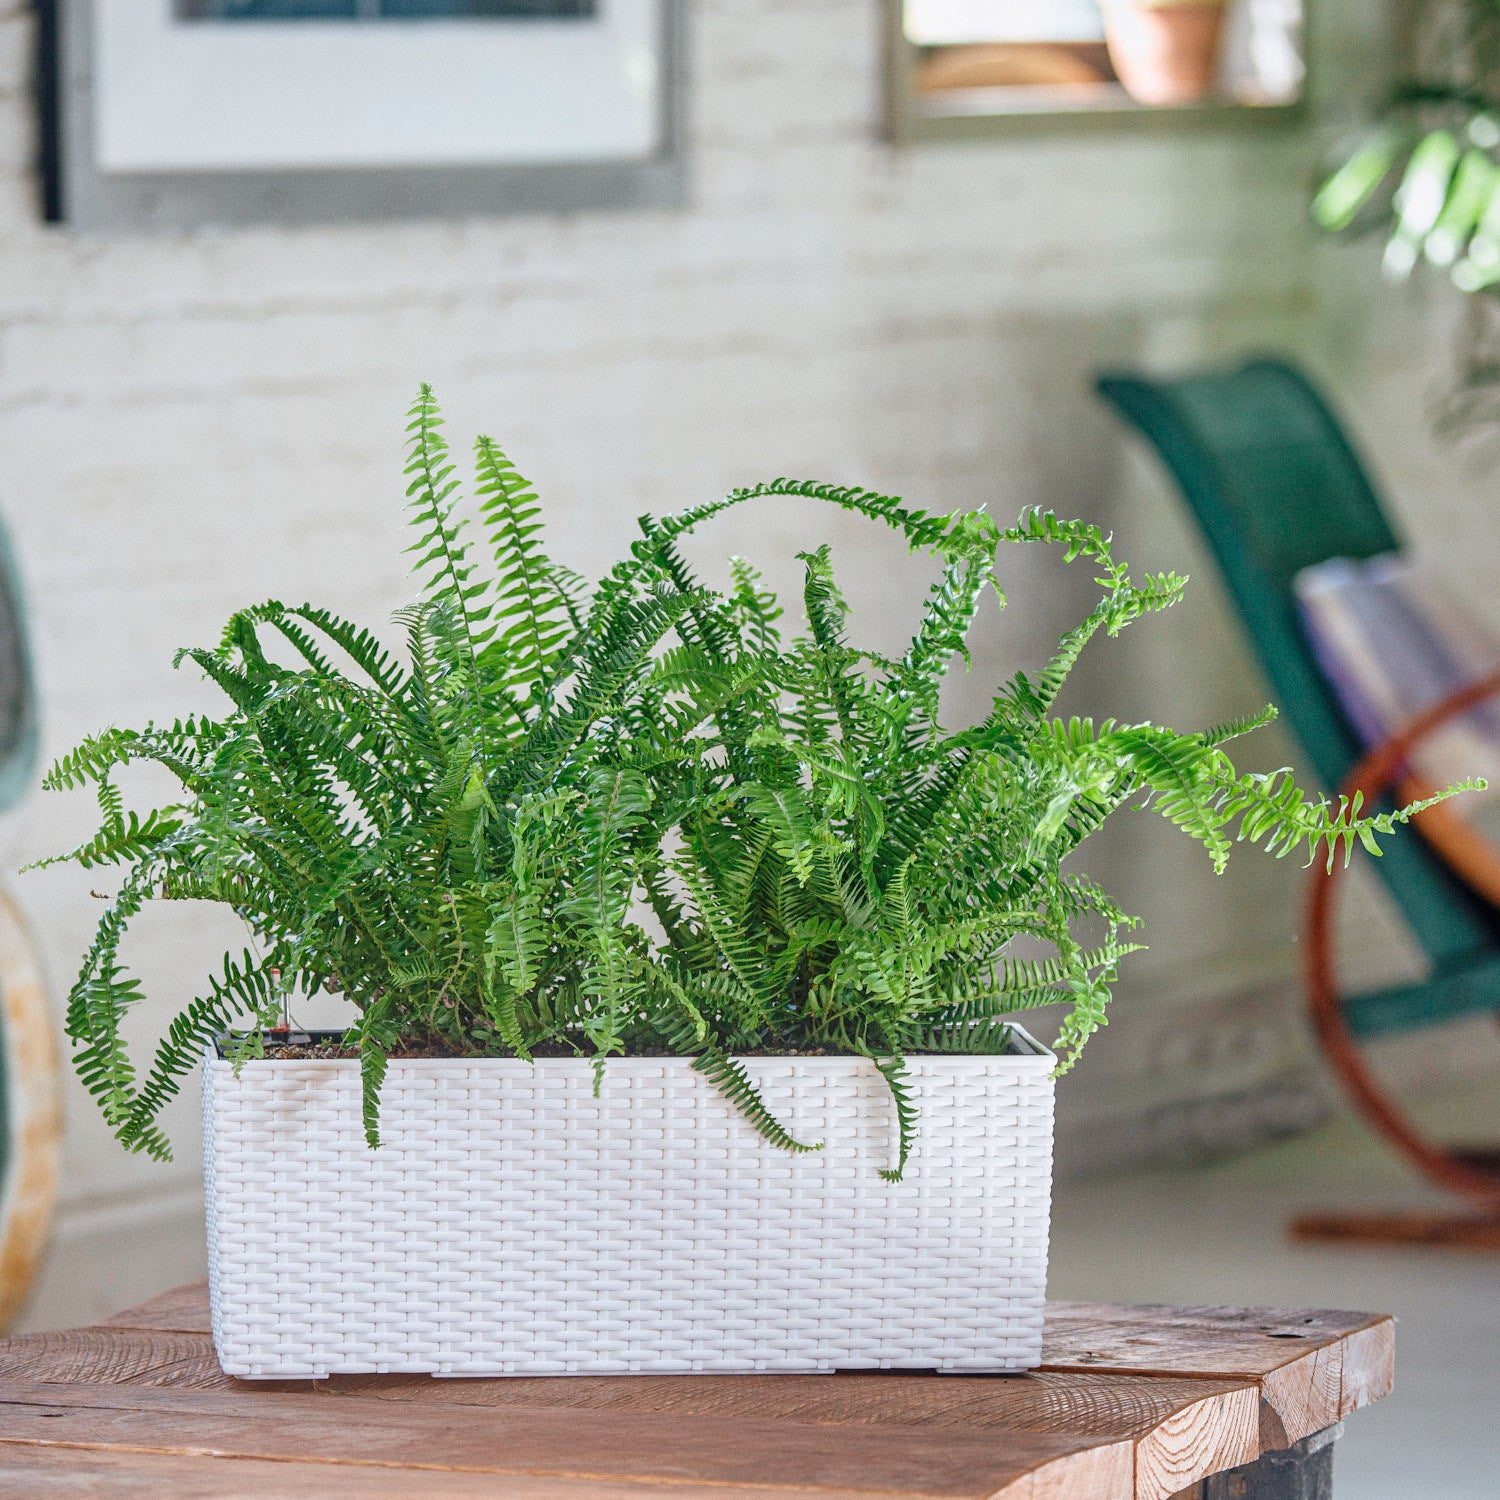 Kimberly Queen Fern potted in Lechuza Balconera Cottage white planter - My City Plants